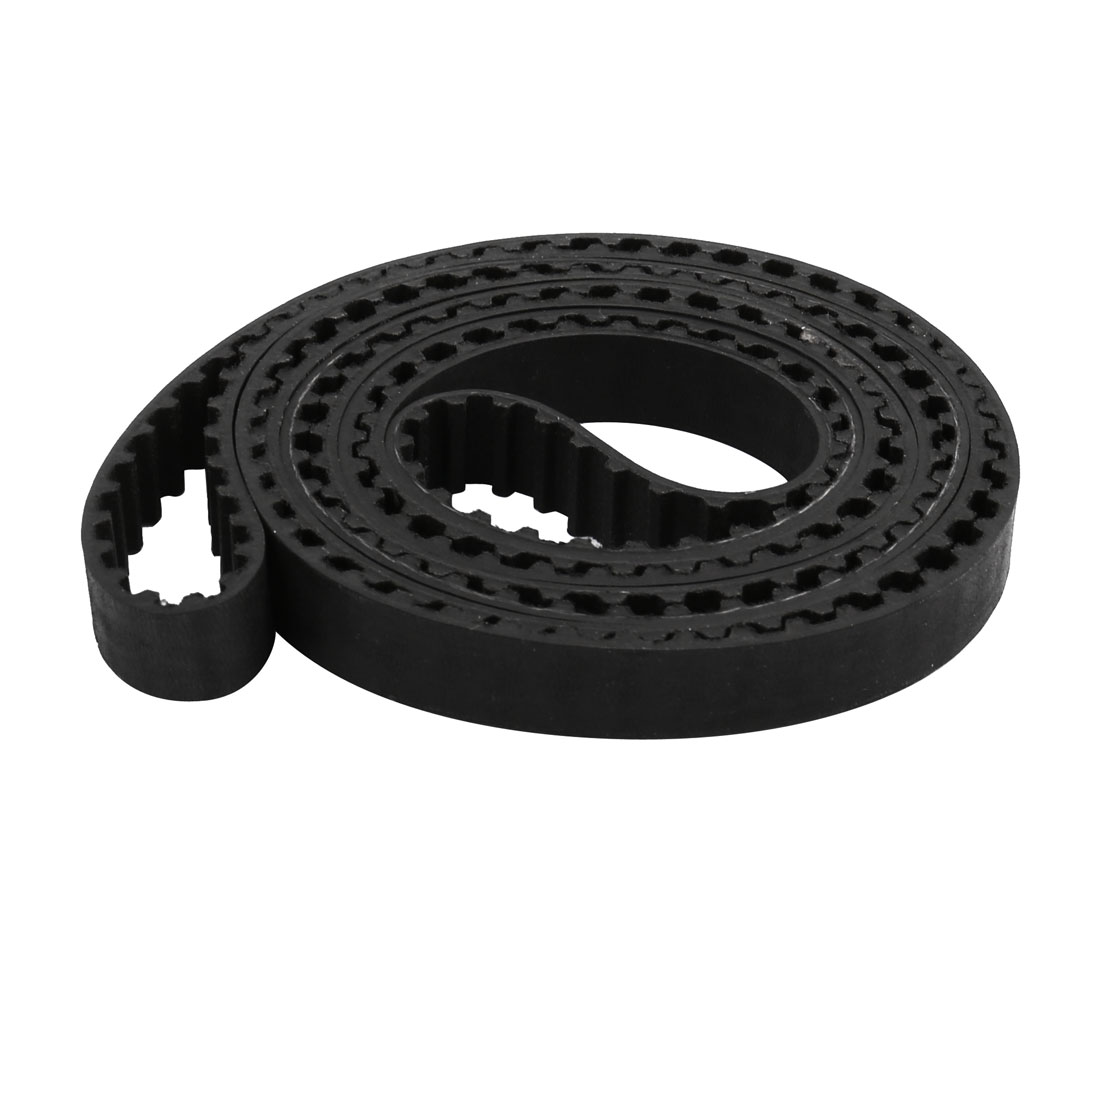 282 Teeth 10mm Width 5.08mm Pitch Rubber Timing Belt for Stepper Motor Black